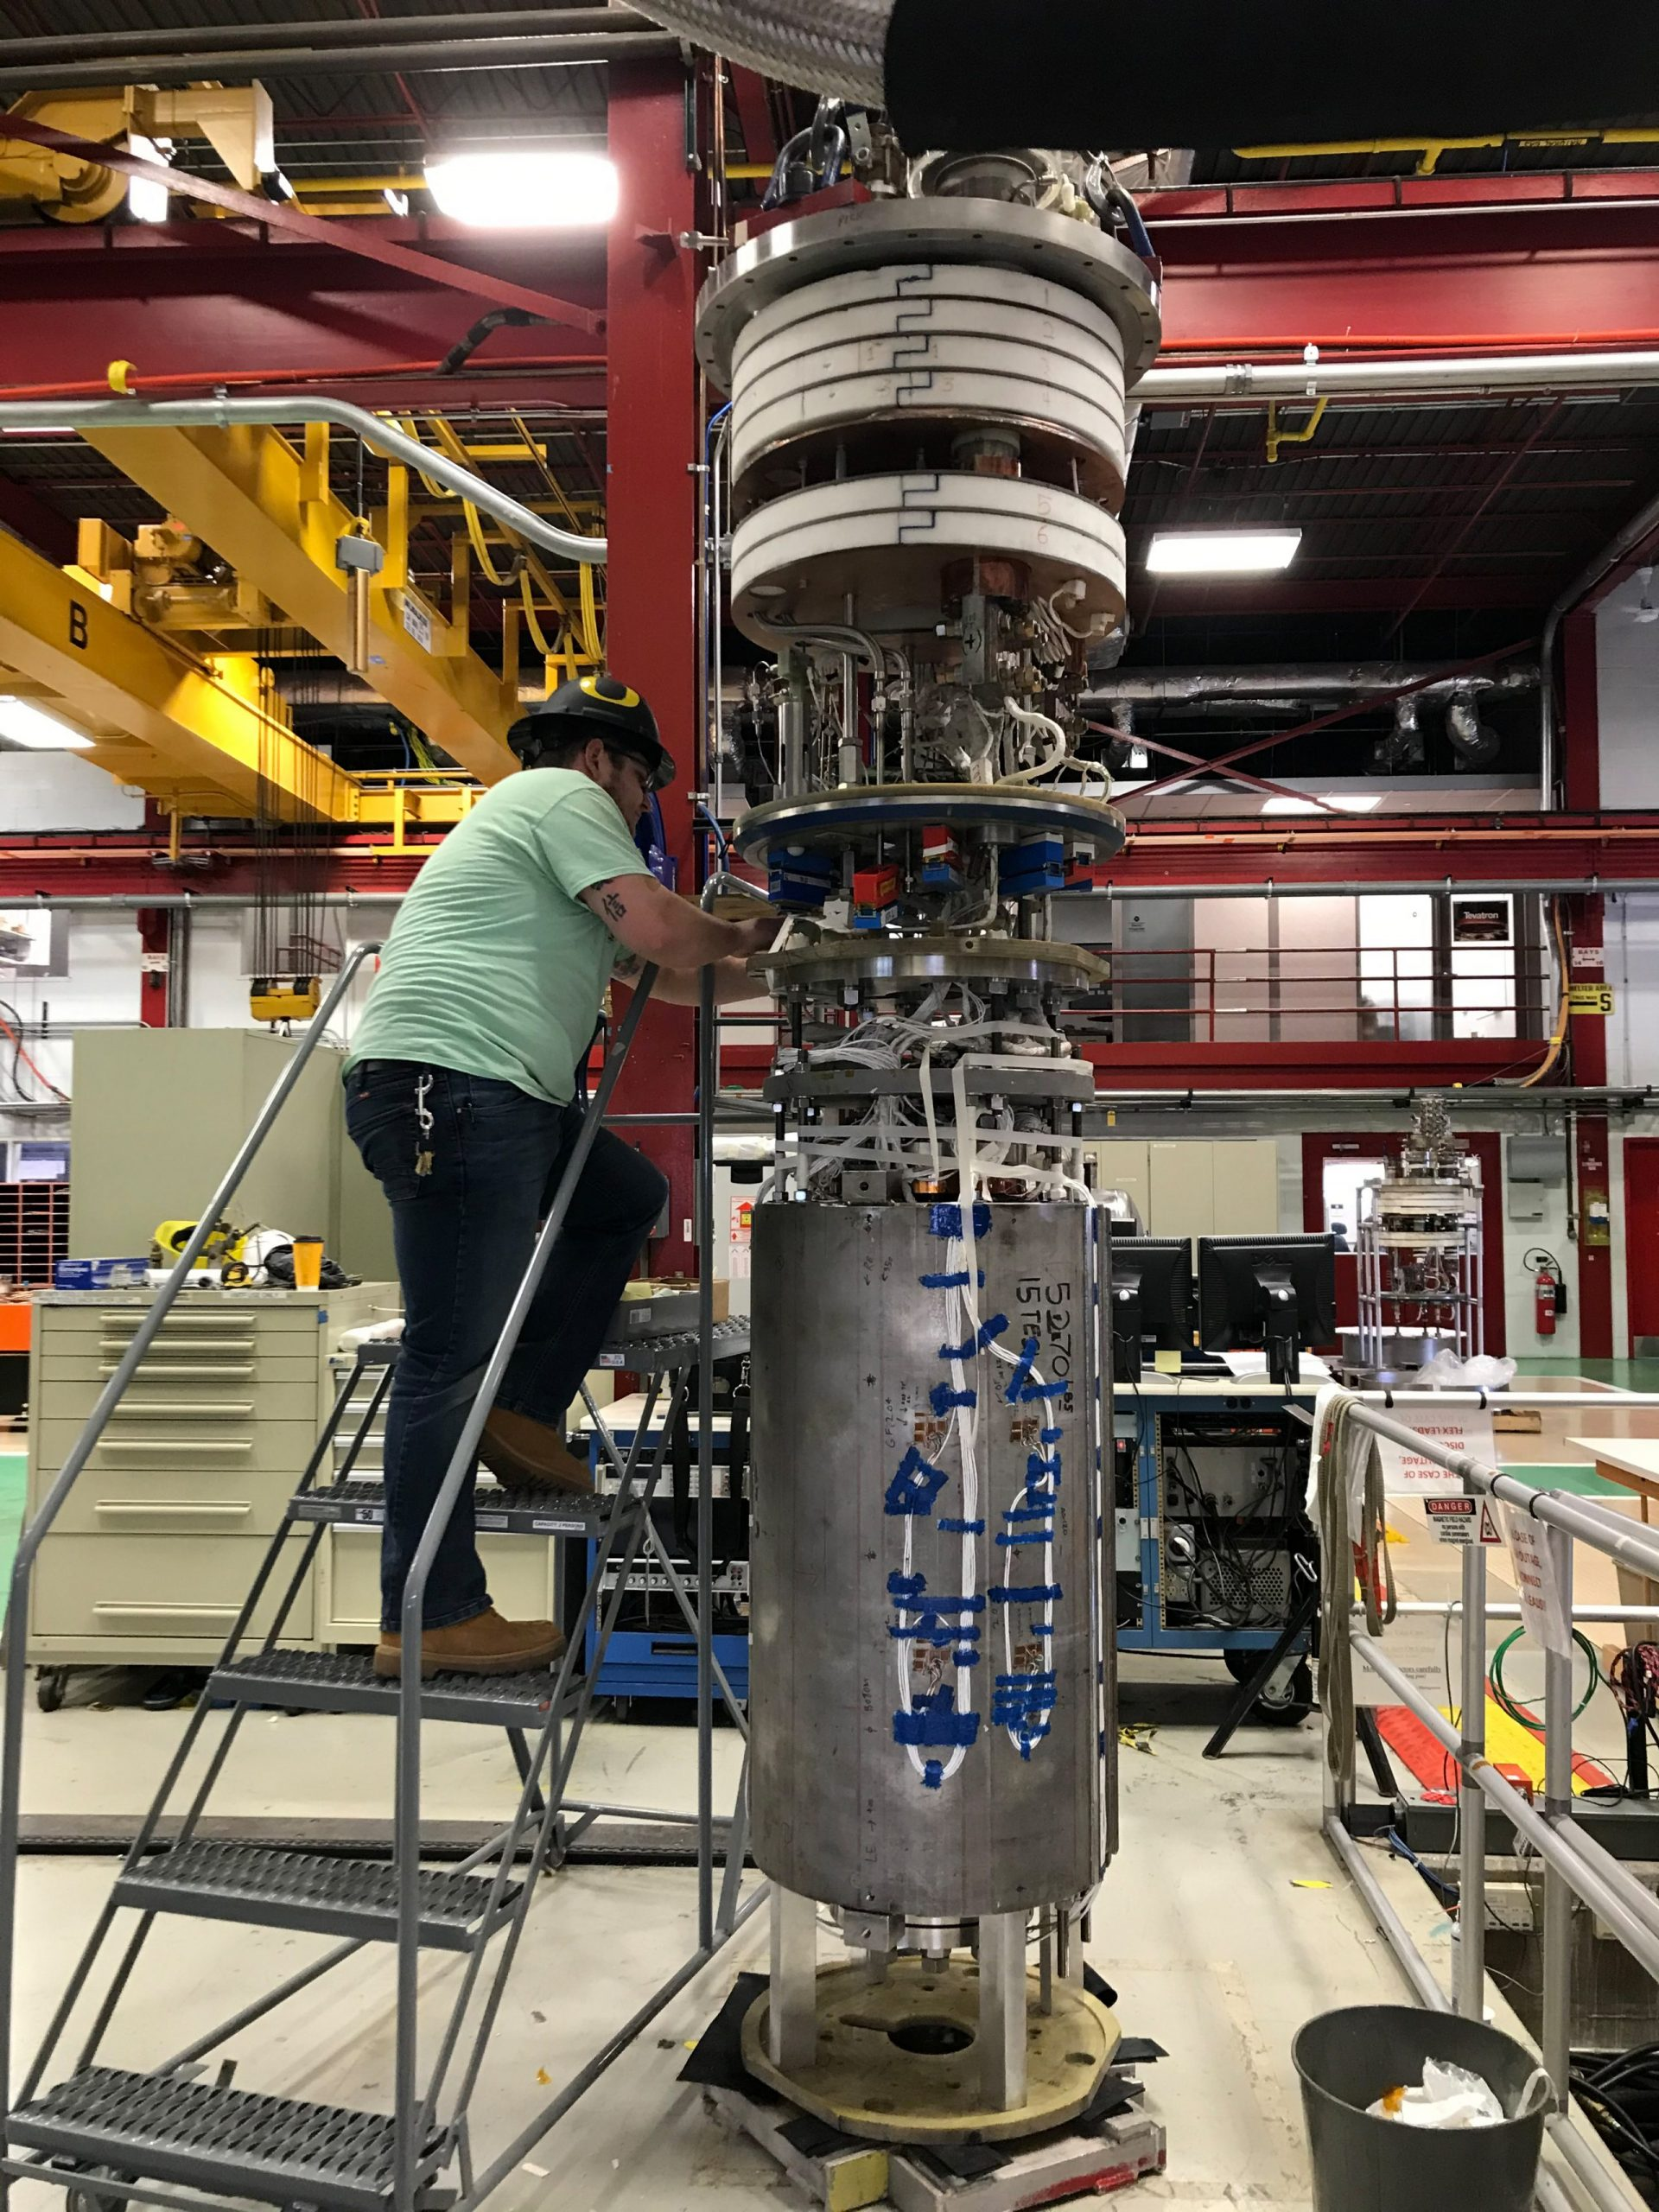 A member of the Fermilab magnet team prepares the demonstrator accelerator magnet for testing in March 2020. These tests are an important step toward meeting the requirements of the future hadron collider that is under discussion in the particle physics community.